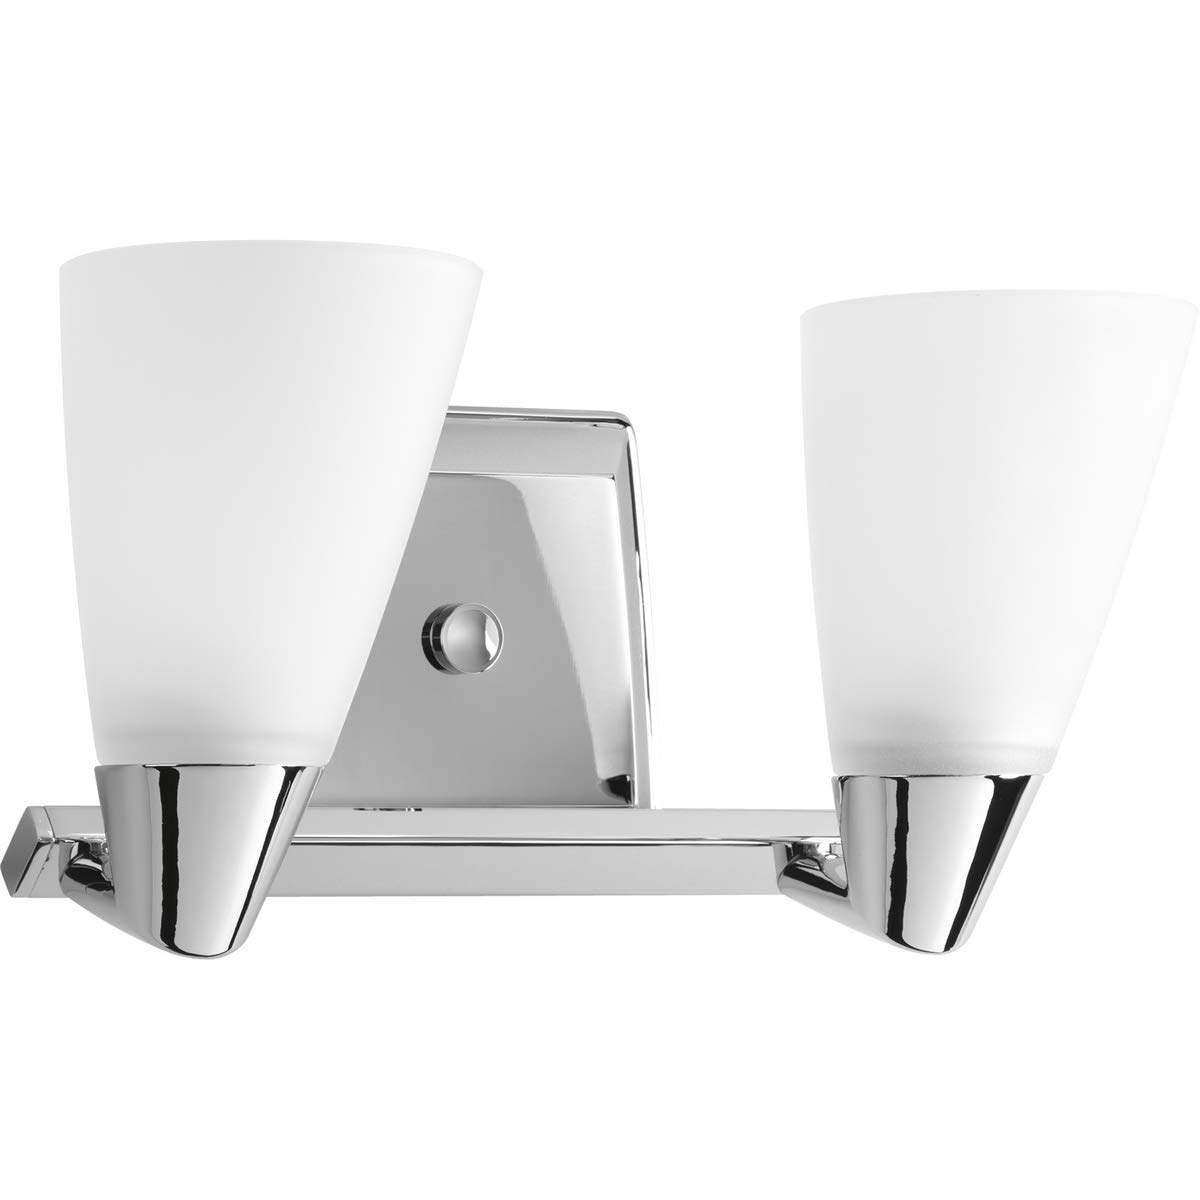 Progress Lighting P2806-15 Rizu Two Light Bath Vanity, Polished Chrome Finish with White Glass